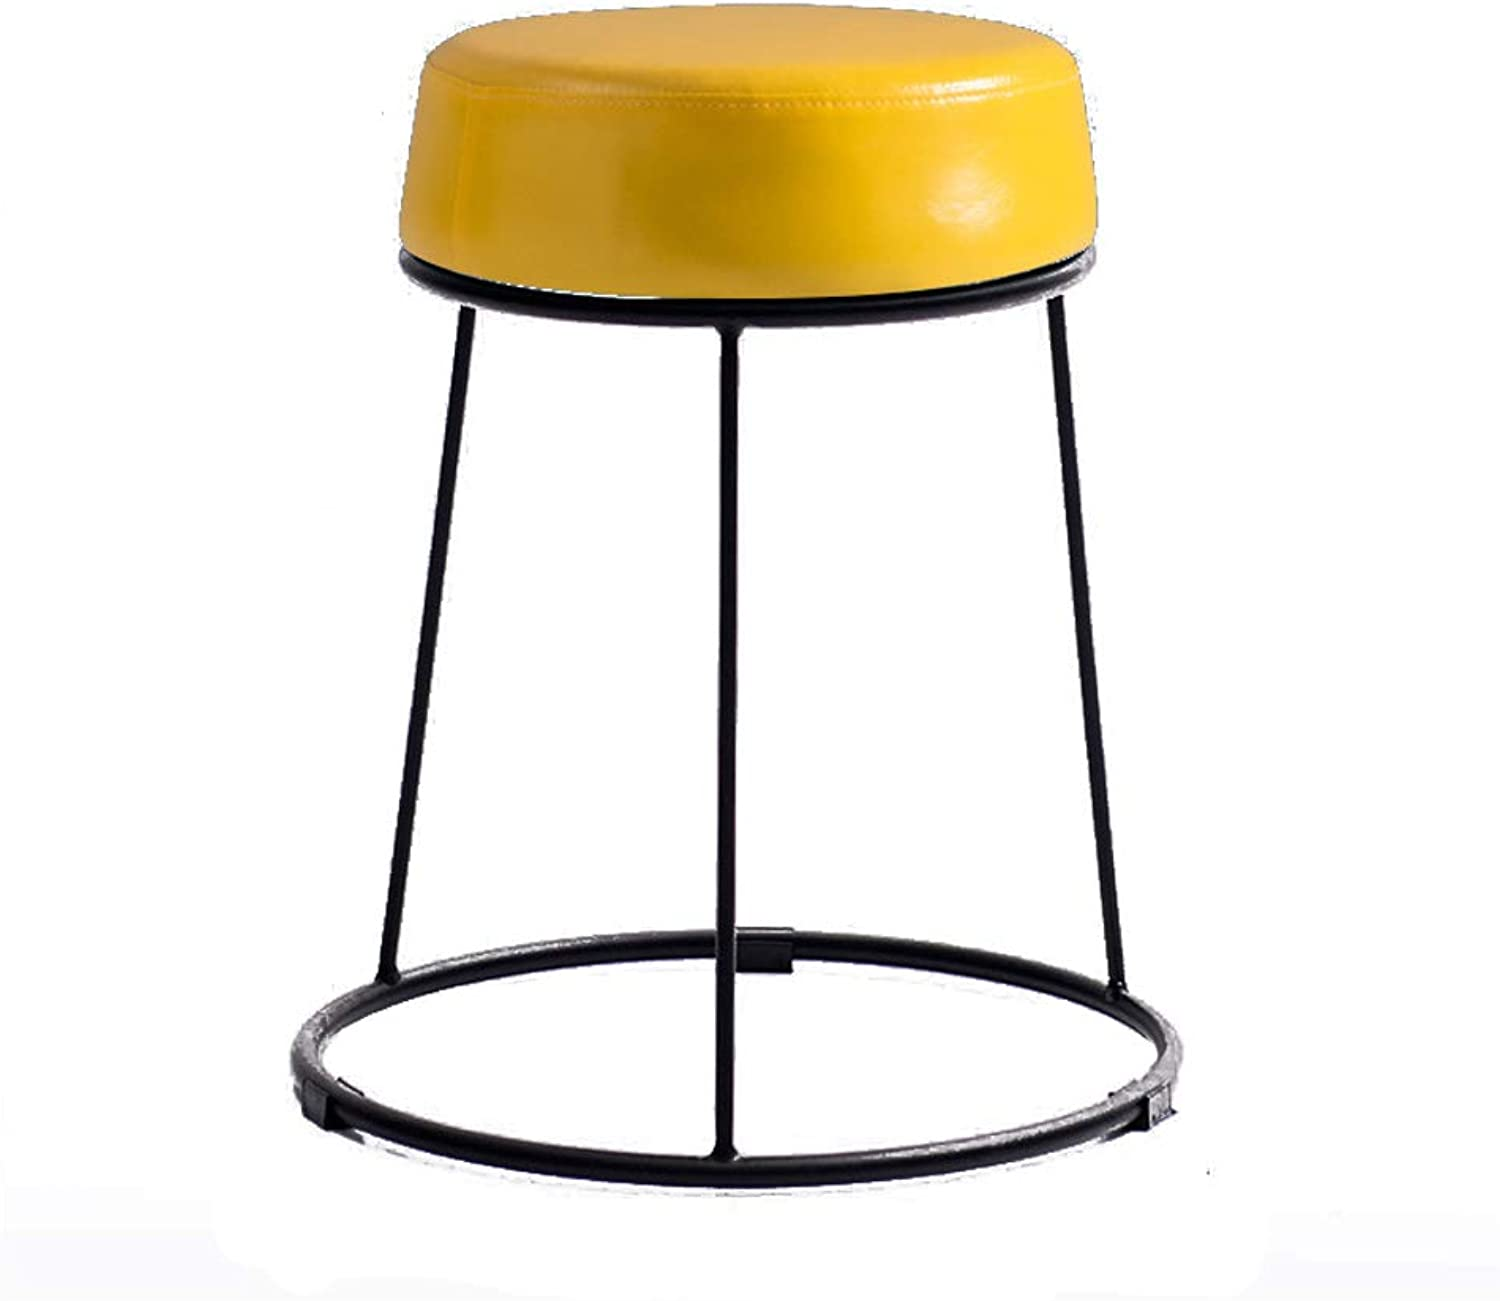 Simple Iron Stool Dining Table Stool Sofa Stool Low Stool Bench,PU Leather,for Cafe Dining Room Study Room Living Room Dressing Room,4 colors